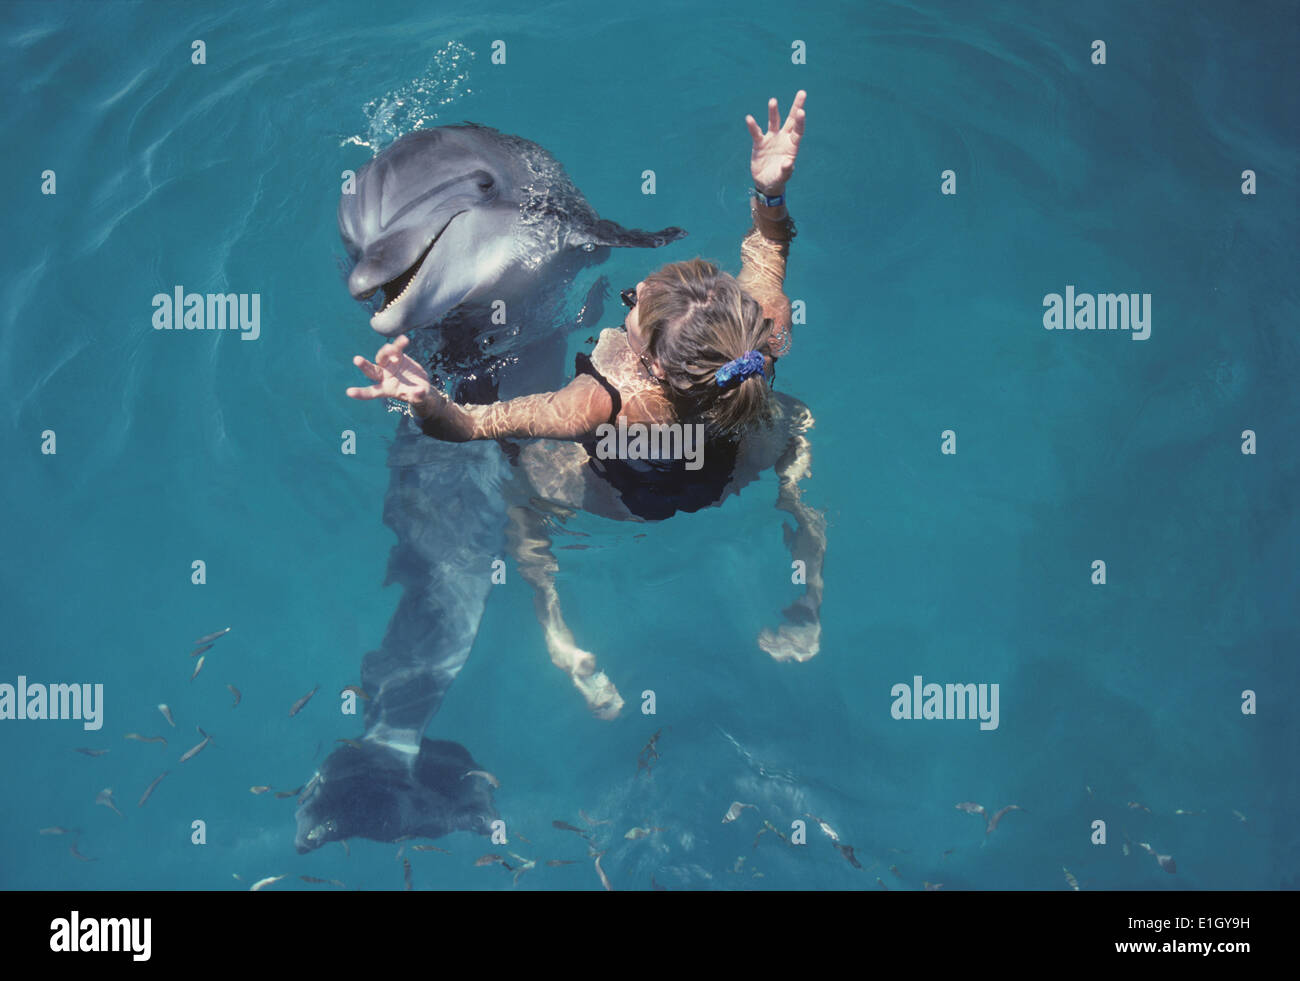 Dolphin trainer interacts with Bottlenose Dolphin (Tursiops truncatus) - Eilat, Israel, Red Sea. Stock Photo